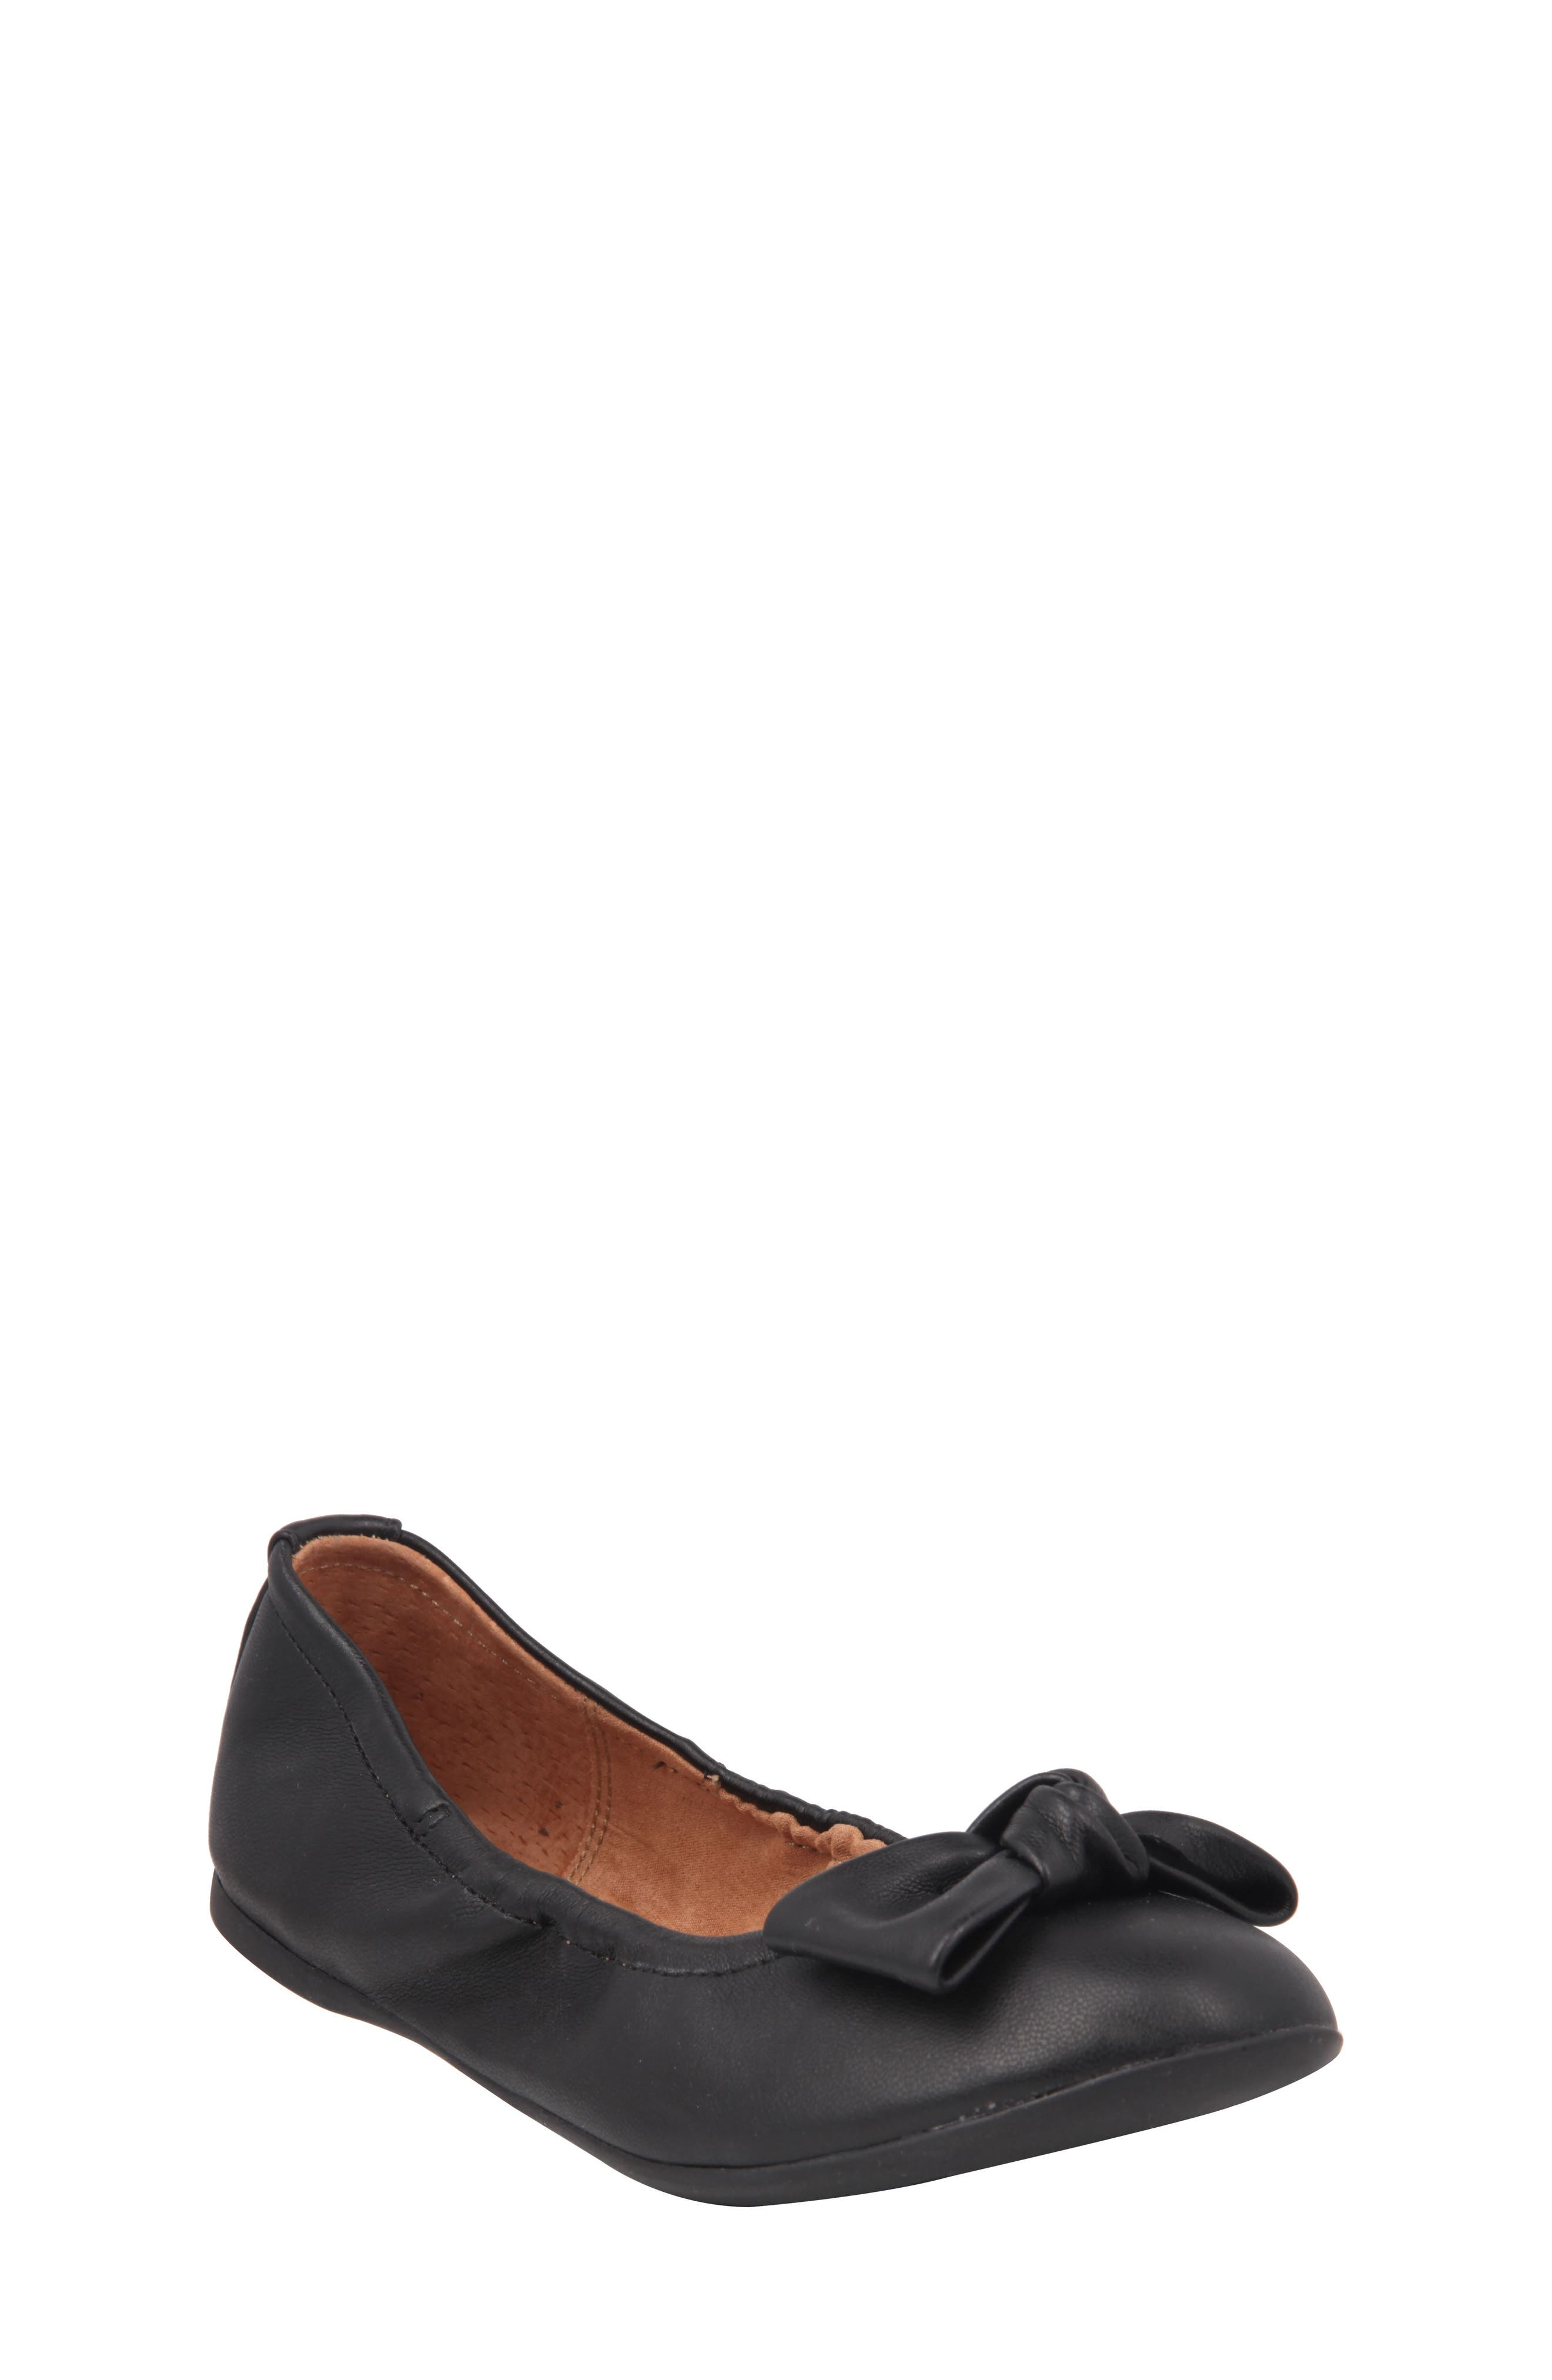 NINA Karla Bow Ballet Flat, Main, color, BLACK SMOOTH LEATHER